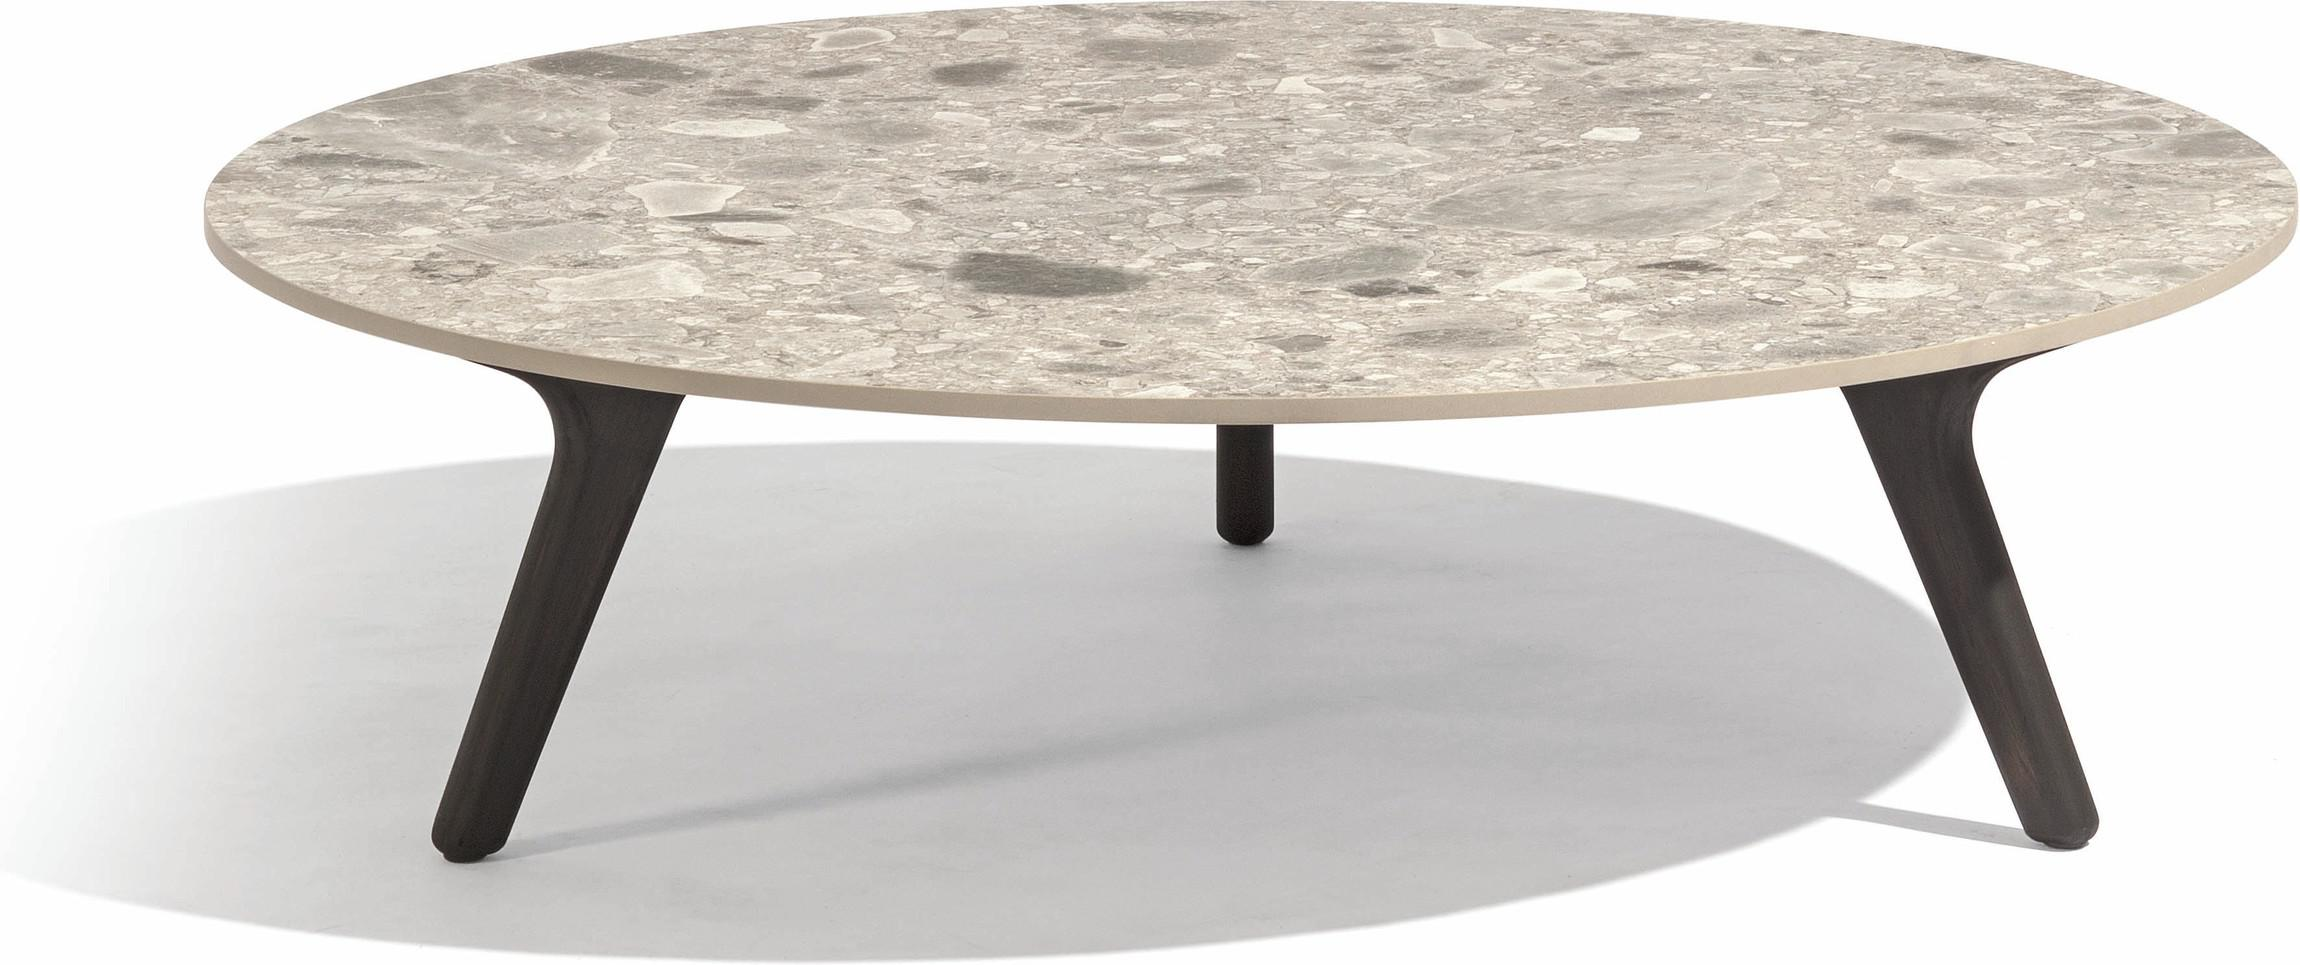 Torsa Low table - Teak nero - CF 100